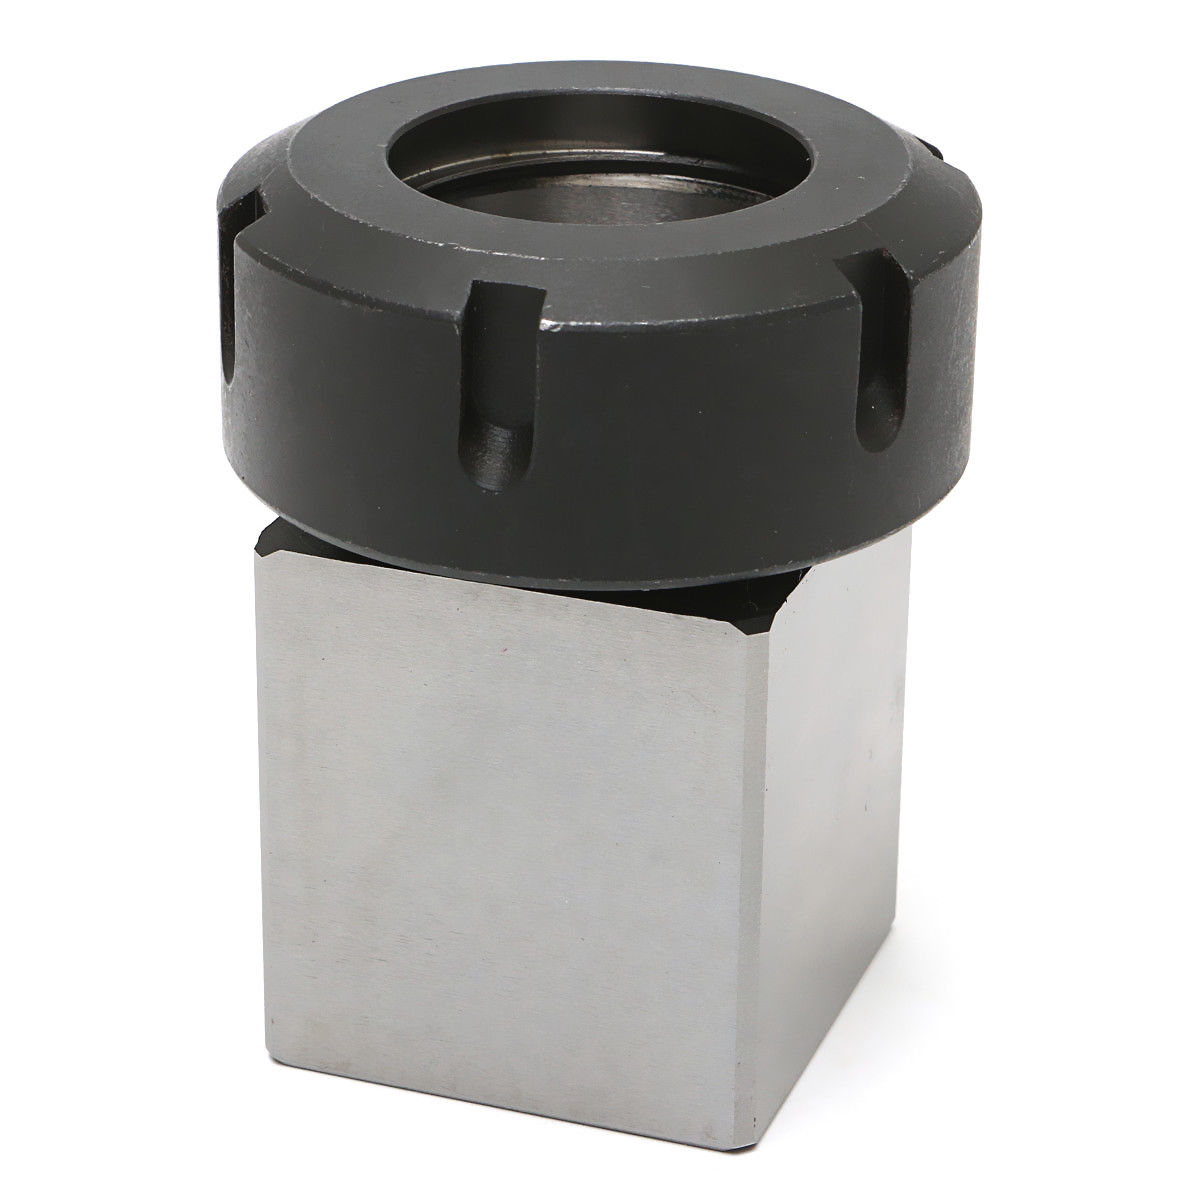 1pc Square ER40 Collet Chuck Block Holder 3900-5125 For CNC Lathe Engraving Machine Cross Hole Drilling 1pc square er40 collet chuck block holder 3900 5125 for cnc lathe engraving machine cross hole drilling